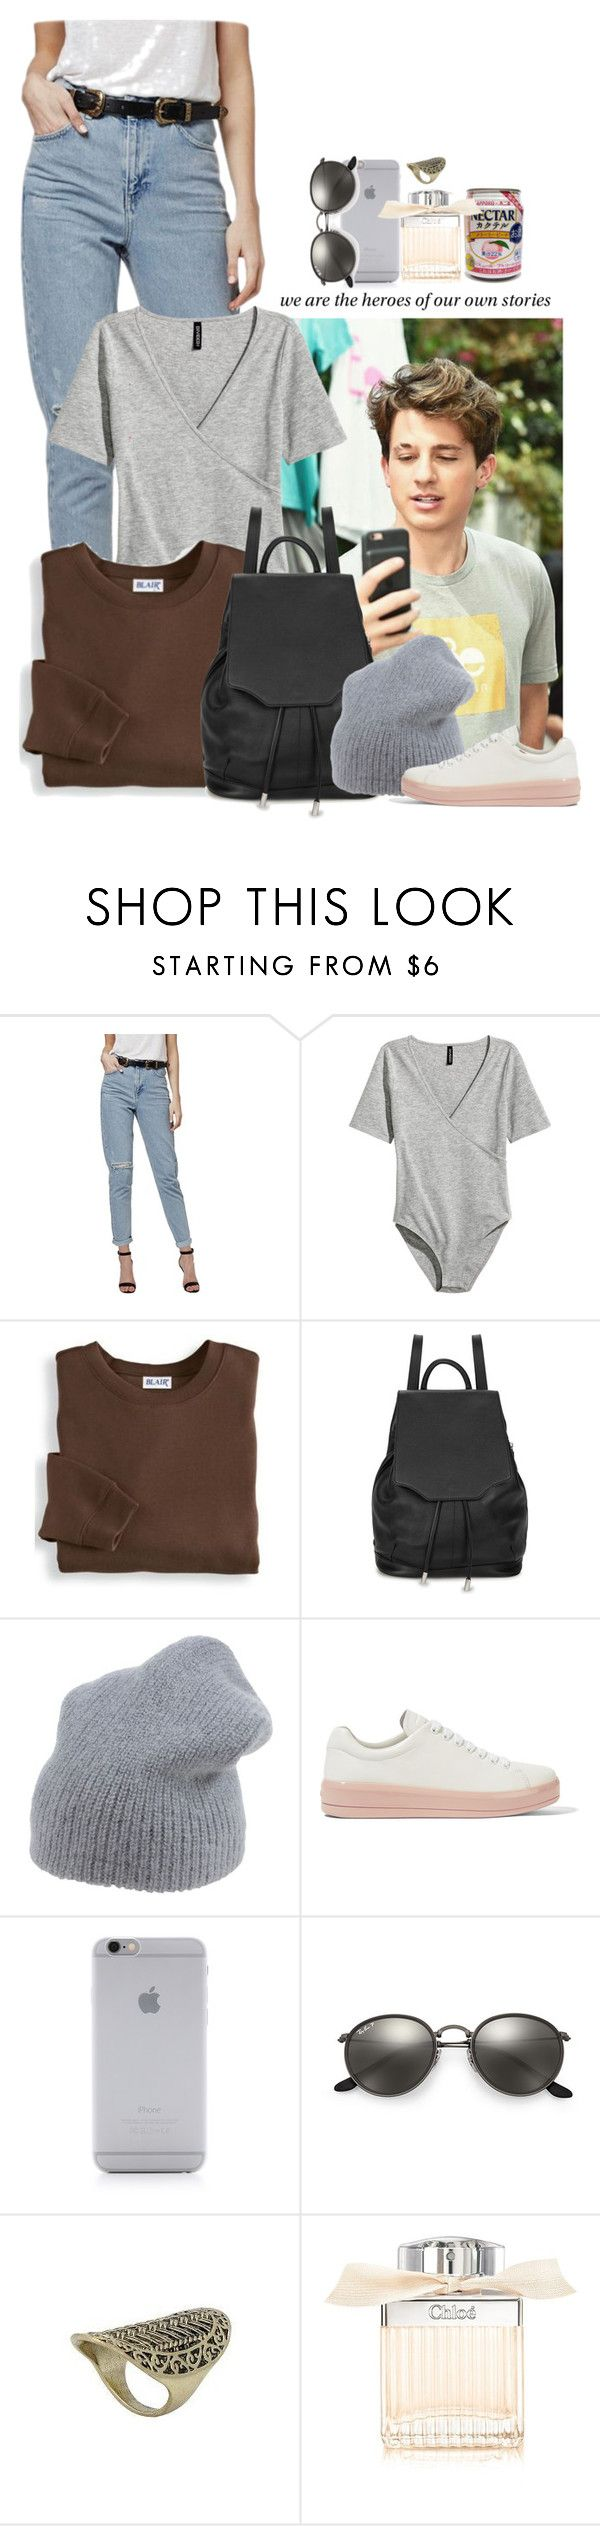 """""""heroes."""" by sticthen ❤ liked on Polyvore featuring Topshop, H&M, Blair, rag & bone, Erika Cavallini Semi-Couture, Prada, Native Union, Ray-Ban, Chloé and waves"""